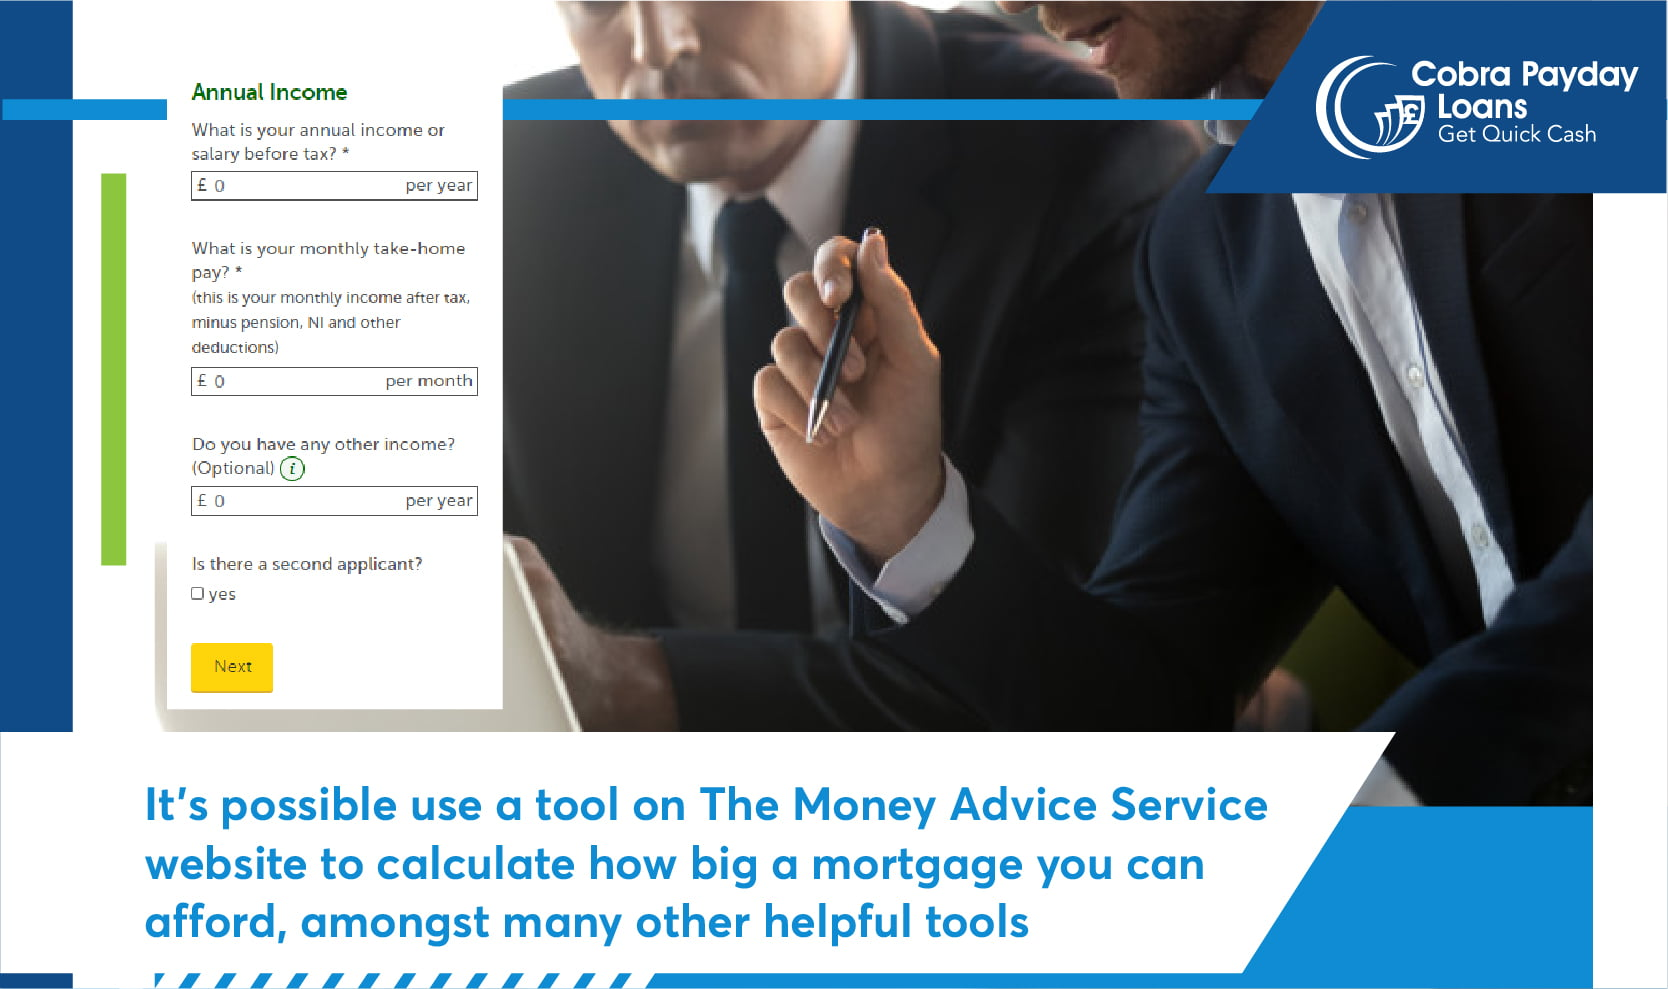 The Money Advice Service is packed full of useful tools